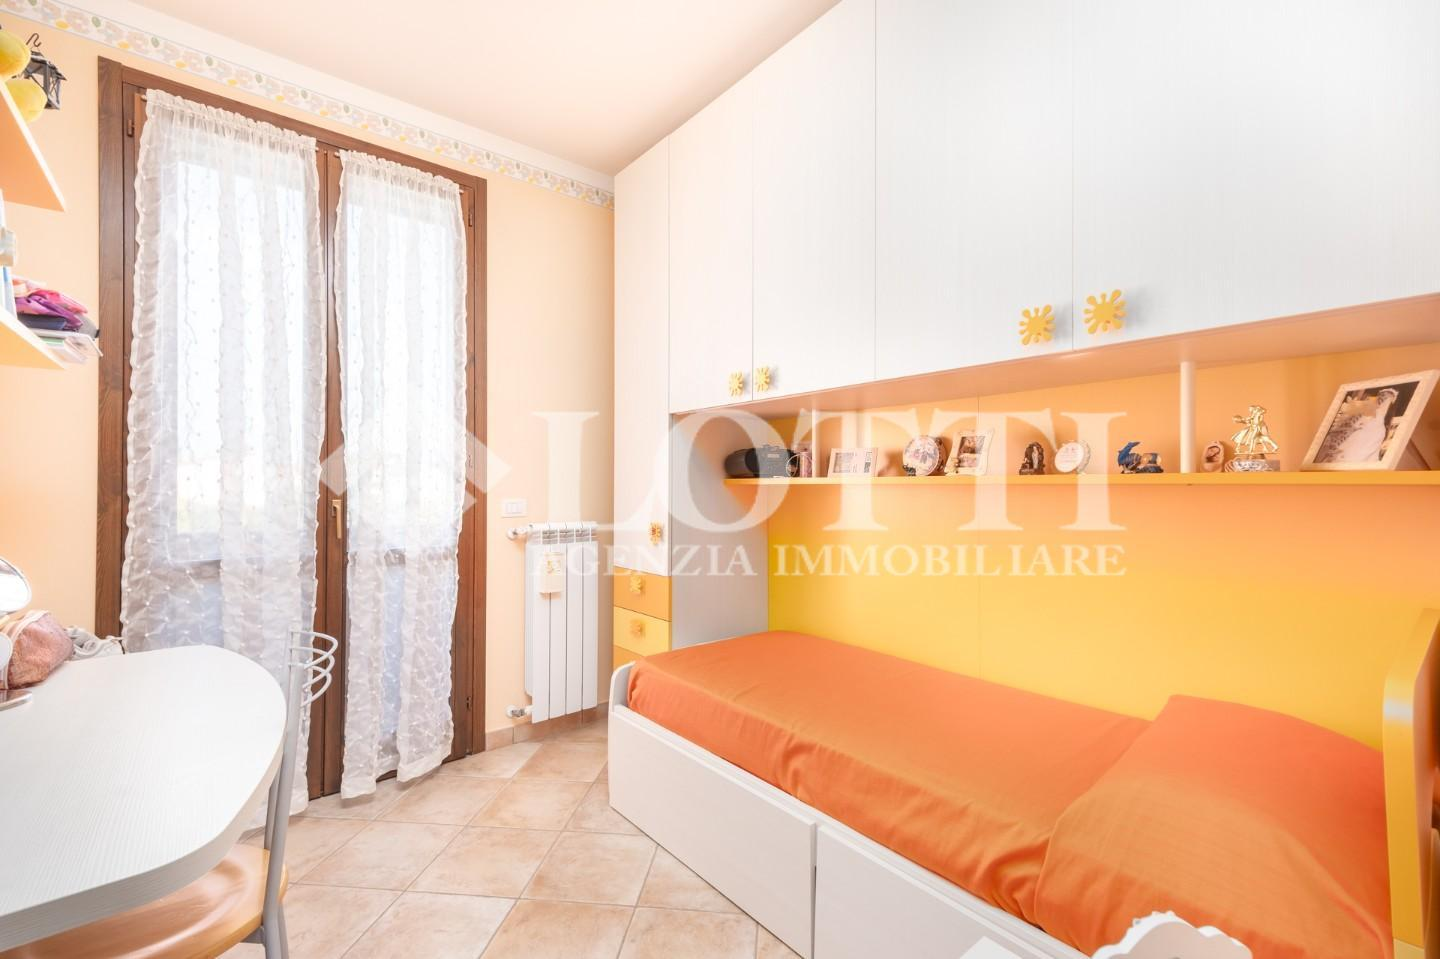 Terraced house for sale, ref. 722